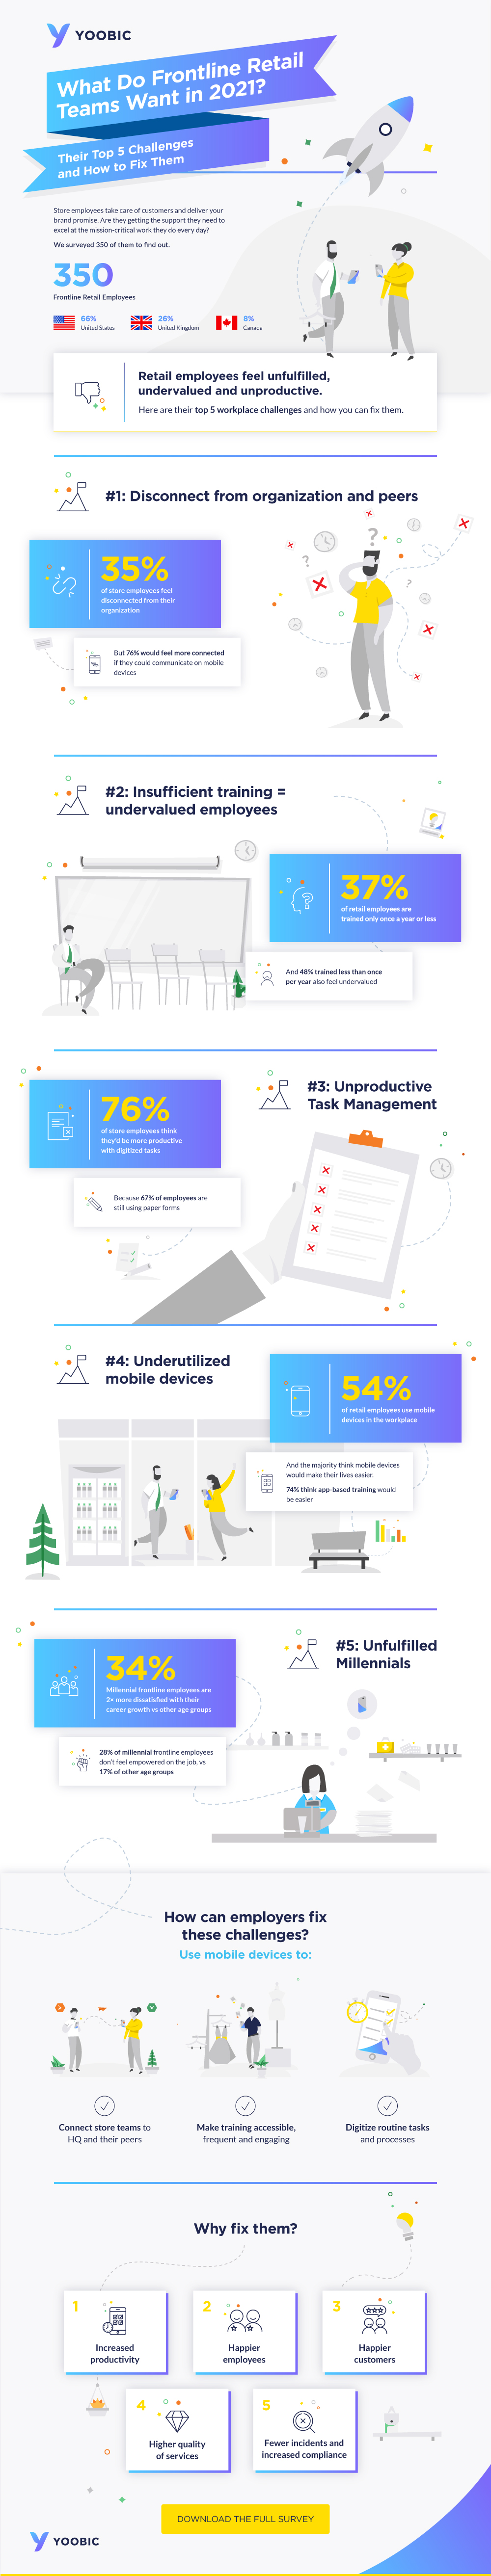 Infographic - What Do Frontline Retail Employees Want in 2021?